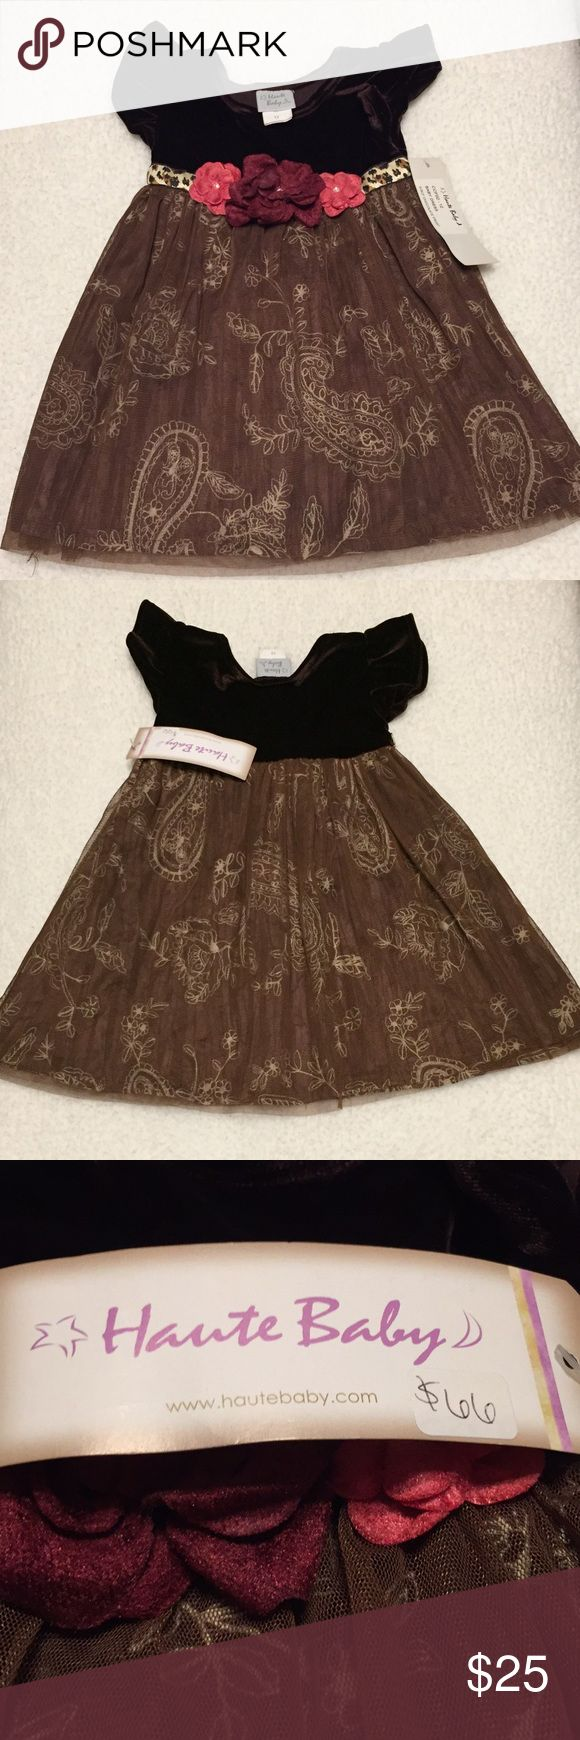 NWT Haute Baby girl dress NWT! 12 mo Haute Baby girl's dress. Deep chocolate velvet top with a beautiful flower sash. Skirt is double layered with mesh over an embroidered layer Dresses Formal